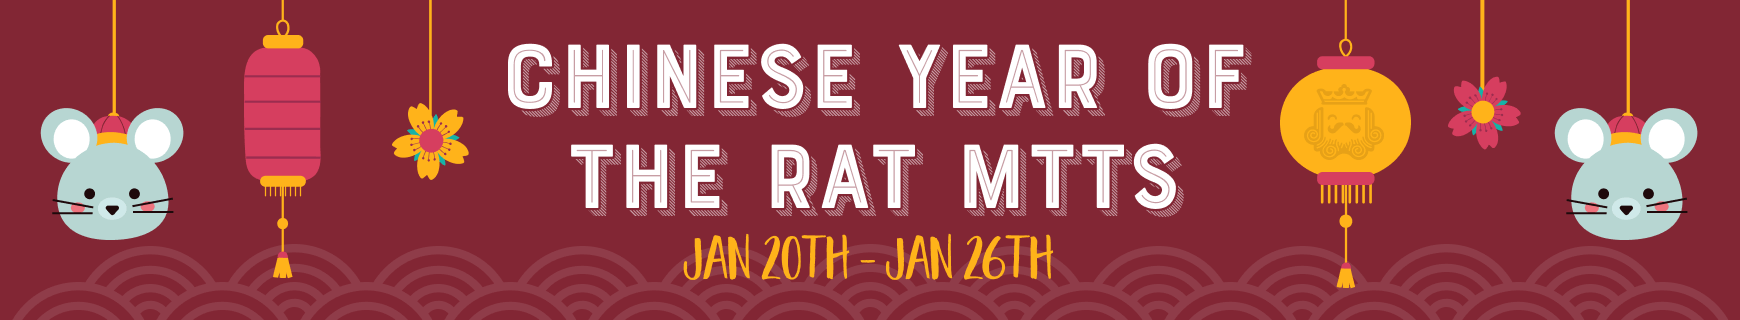 Chinese year of the rat mtts   dashboard %28870 x 160%29 2x